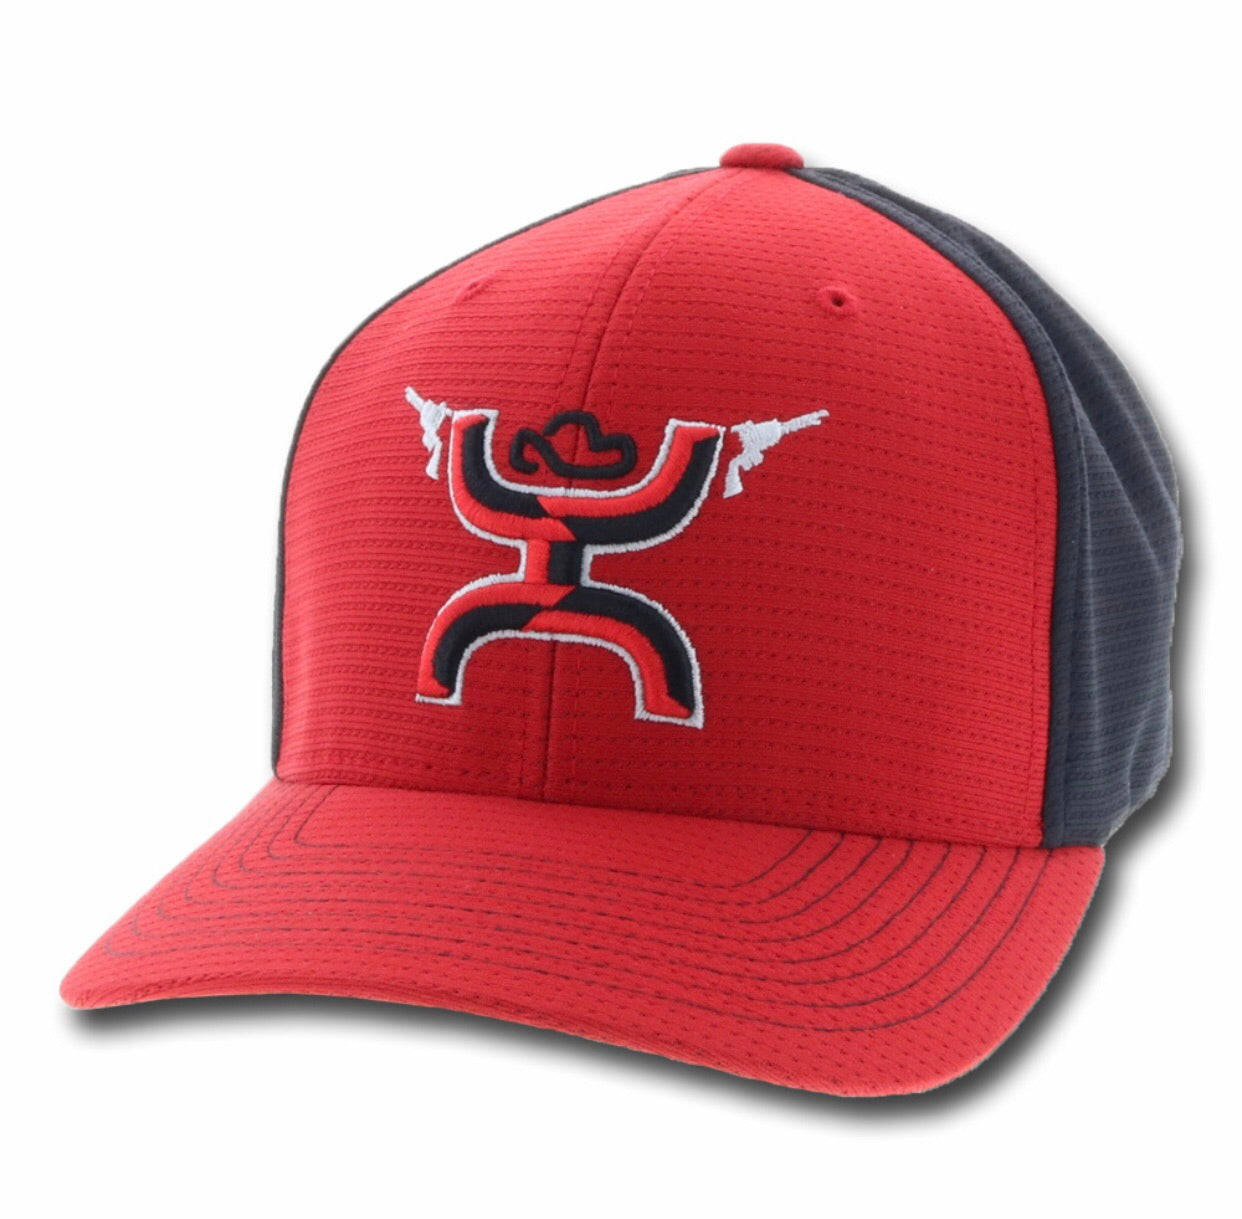 1007RDBK-Y Gunner Youth Cap